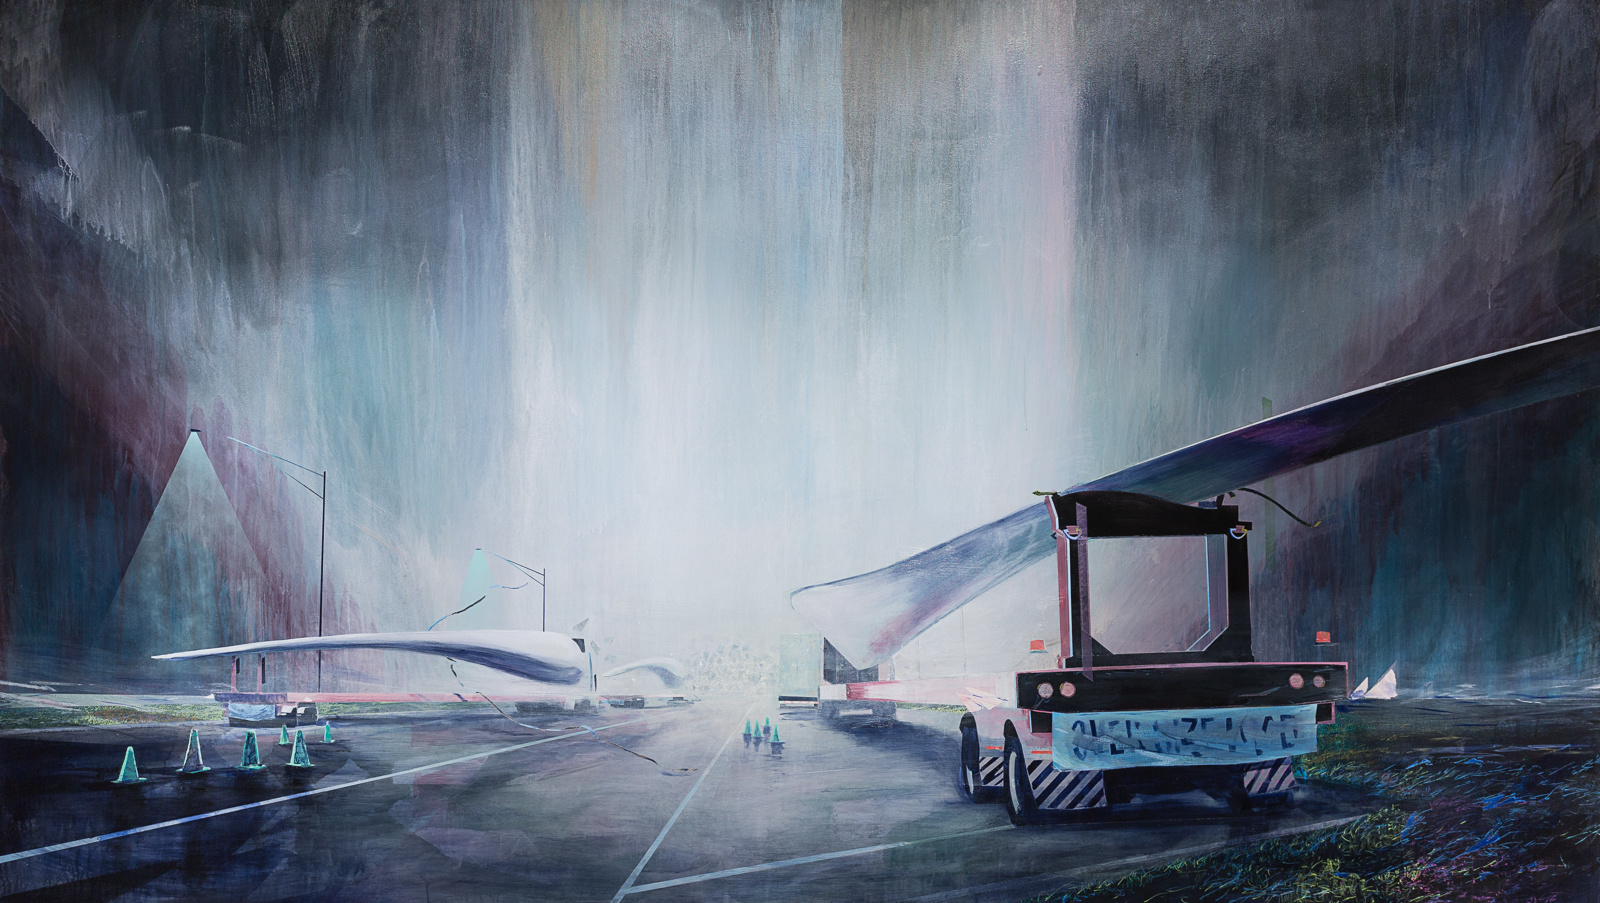 Kansas II (White Night) , 2016, acrylic on canvas,65 x 115 in., Commissioned by the University of Kansas Business School for the Capitol Federal Hall Collection